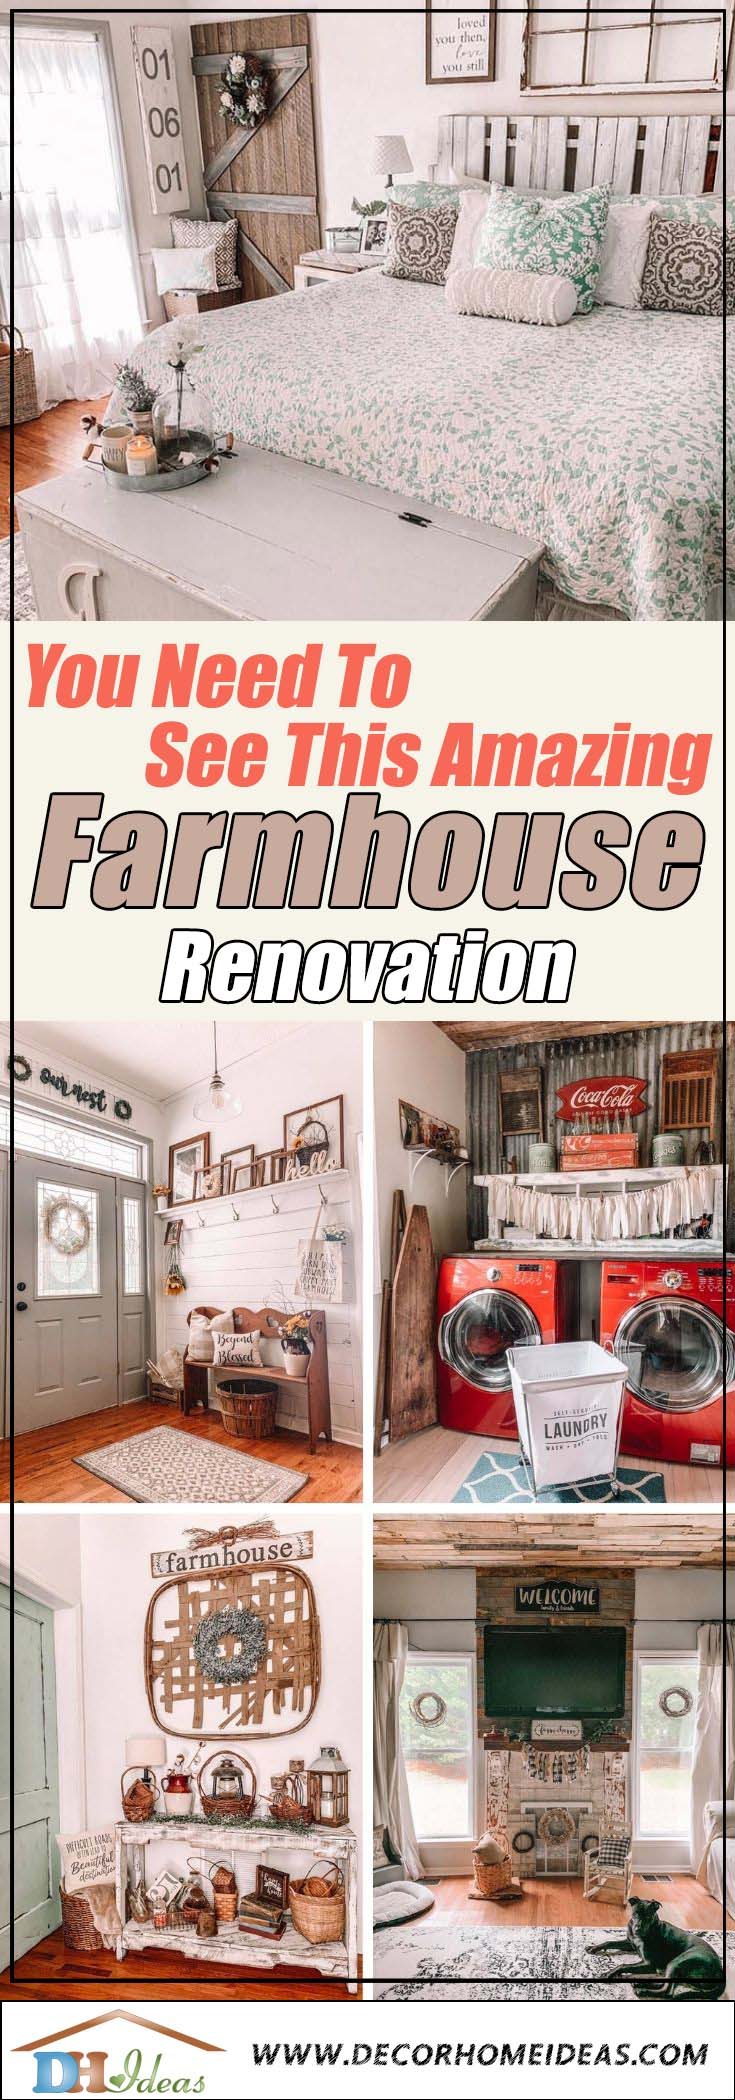 1890's Farmhouse Renovation project. See how this old ruined farmhouse got totally transformed. #farmhouse #makeover #renovation #decorhomeideas